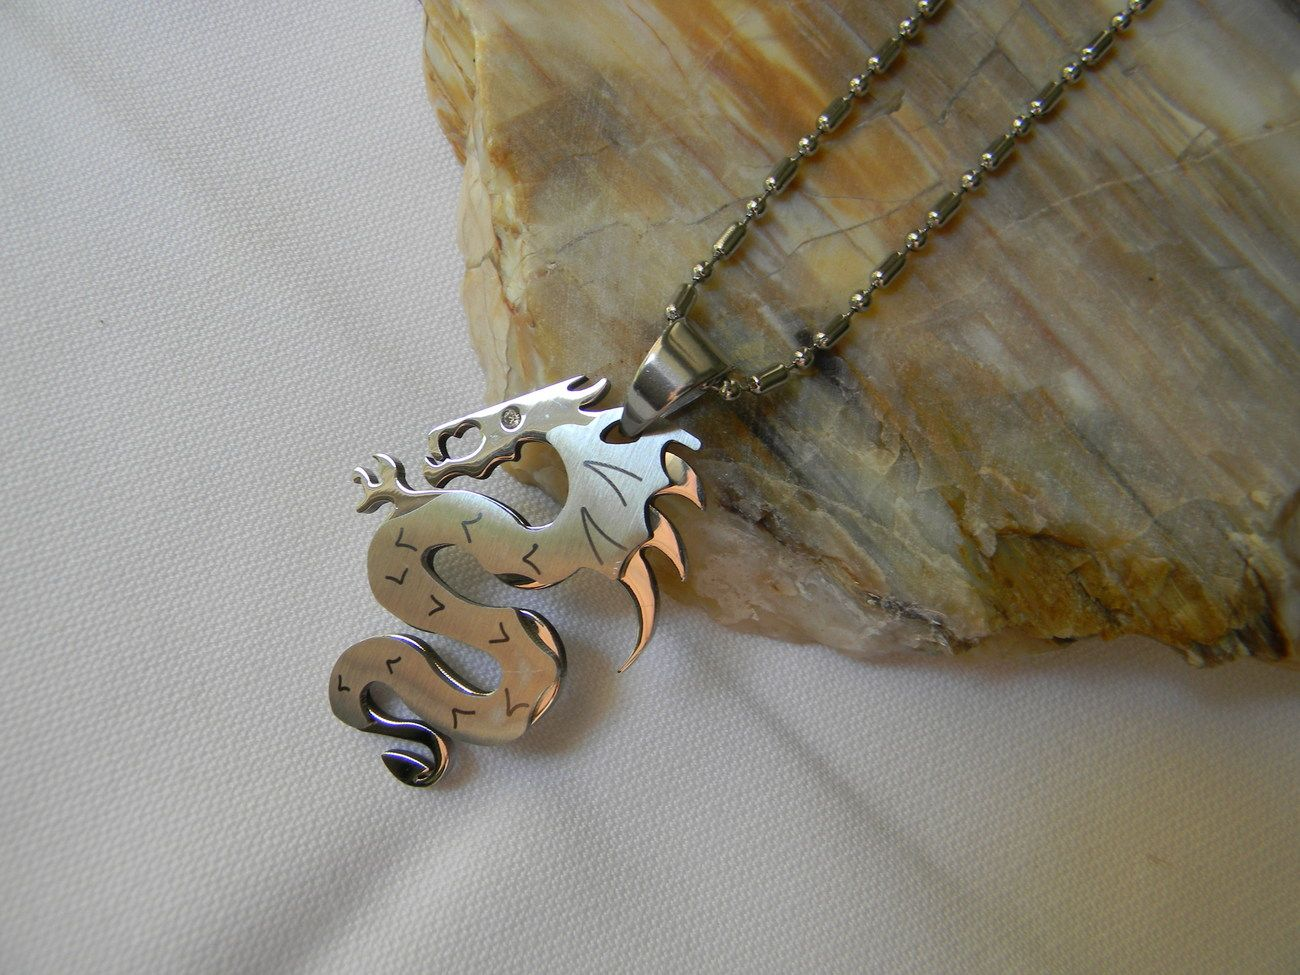 Stainless Steel Dragon Design Men's Necklace